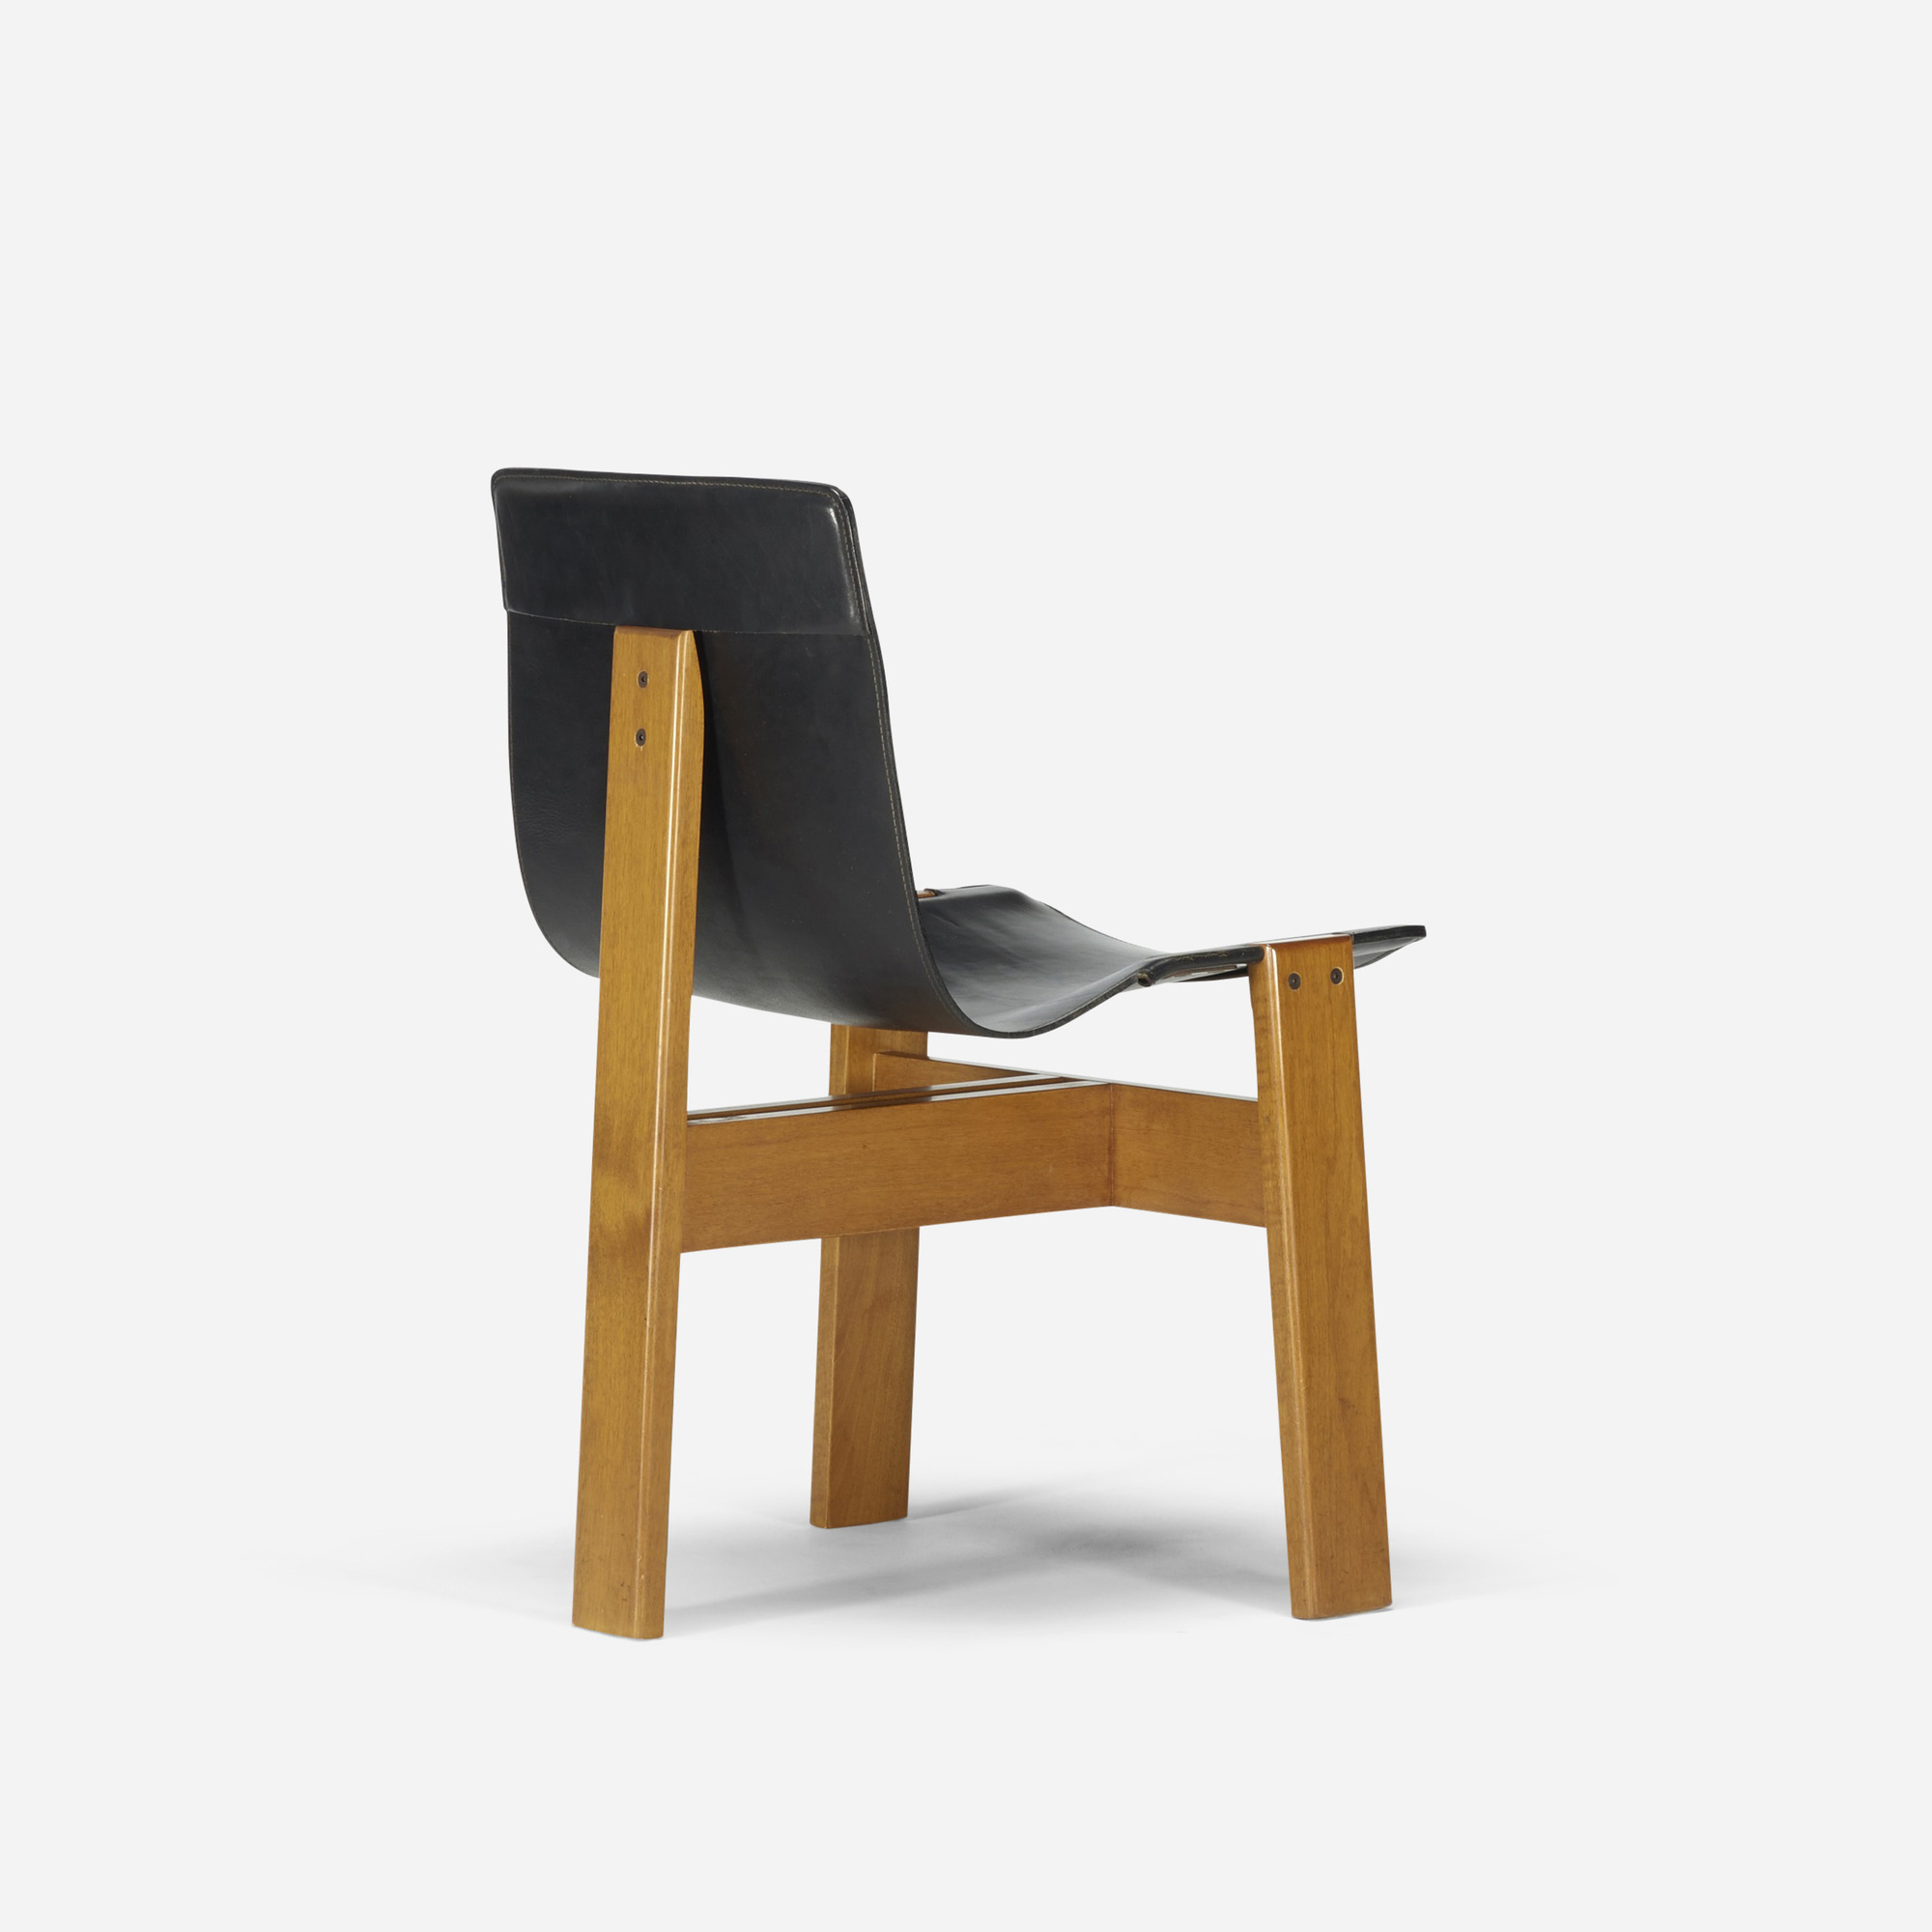 526: Angelo Mangiarotti / Tre 3 dining chair (1 of 3)